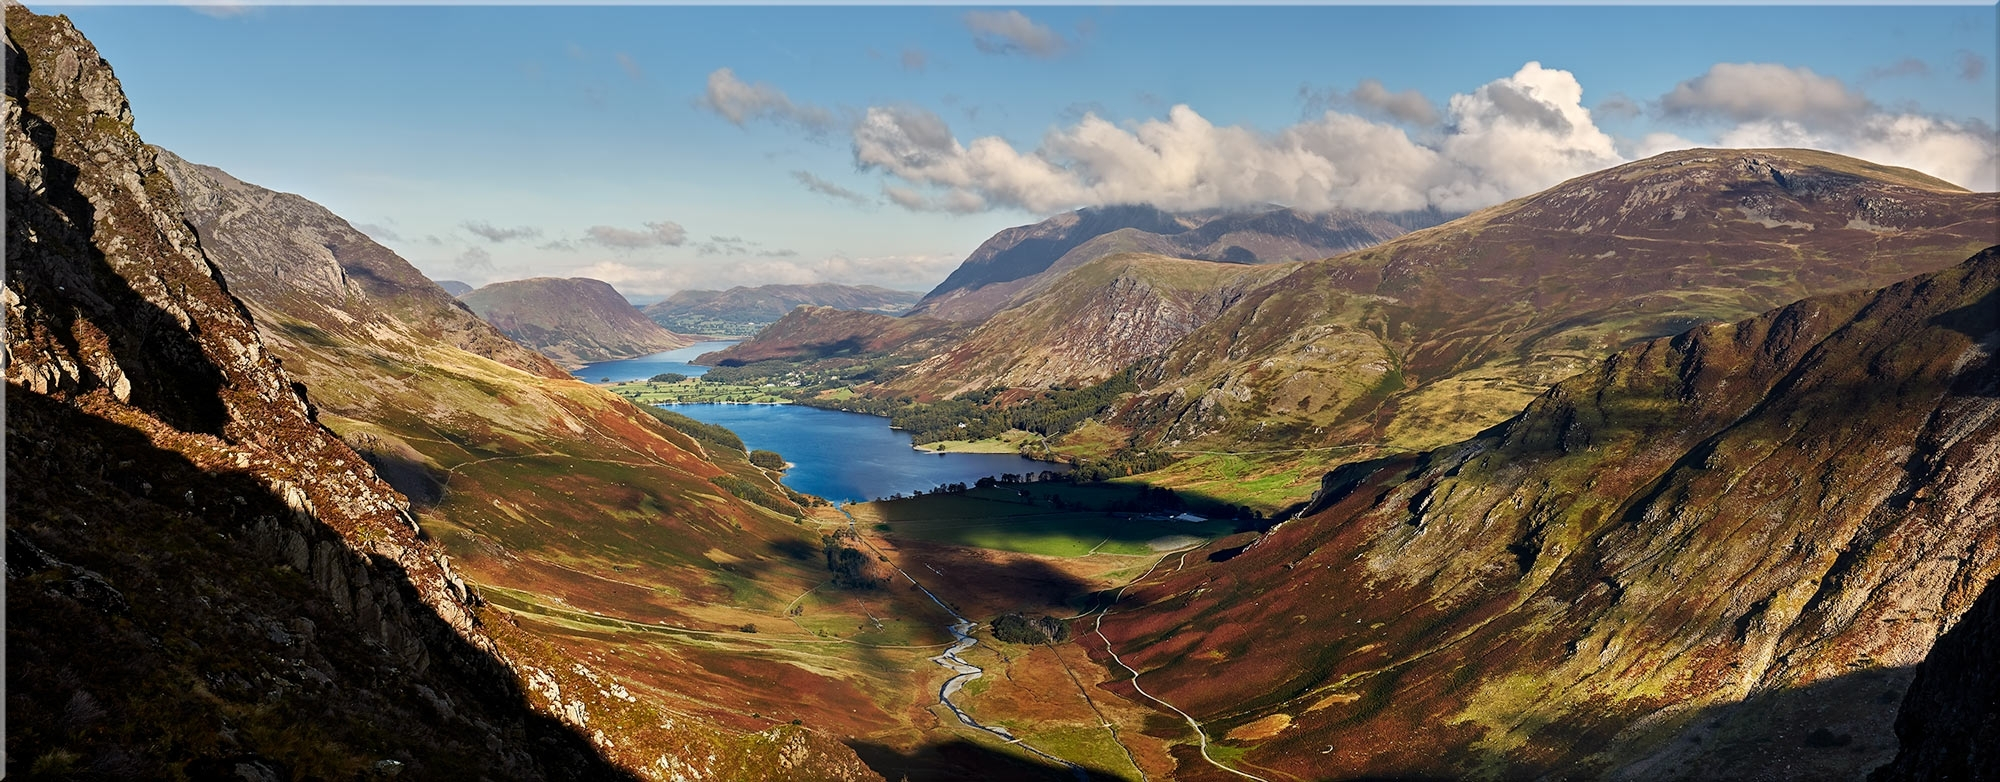 Buttermere Valley Green Crag – Lake District Canvas Prints Pertaining To Most Up To Date Lake District Canvas Wall Art (View 5 of 15)